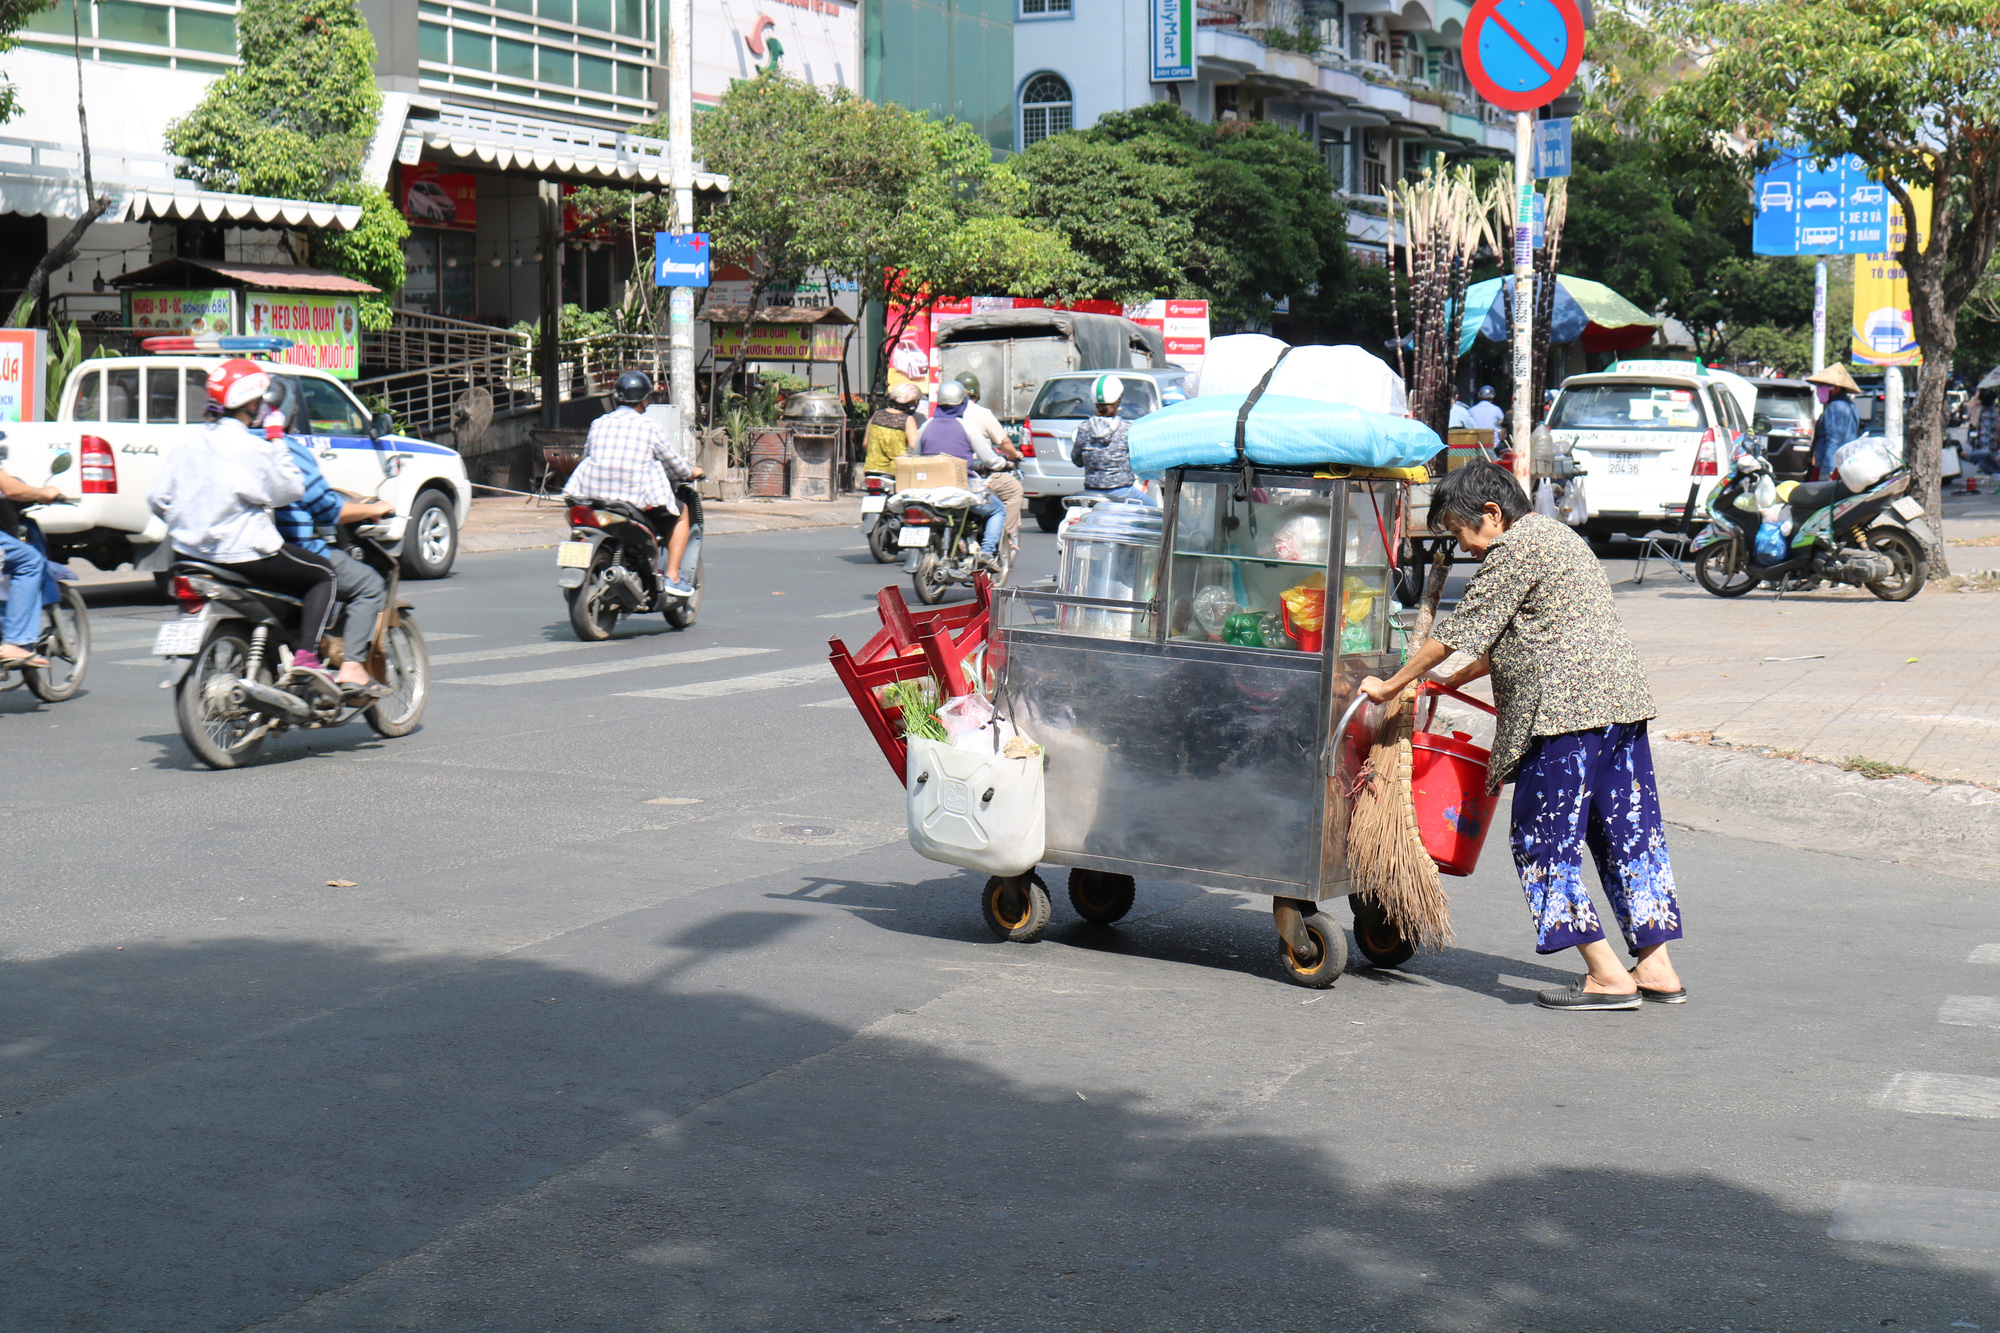 Nguyen Thi Huynh pushes her sticky rice vendor cart on a street in Ho Chi Minh City. Photo: Ngoc Phuong / Tuoi Tre